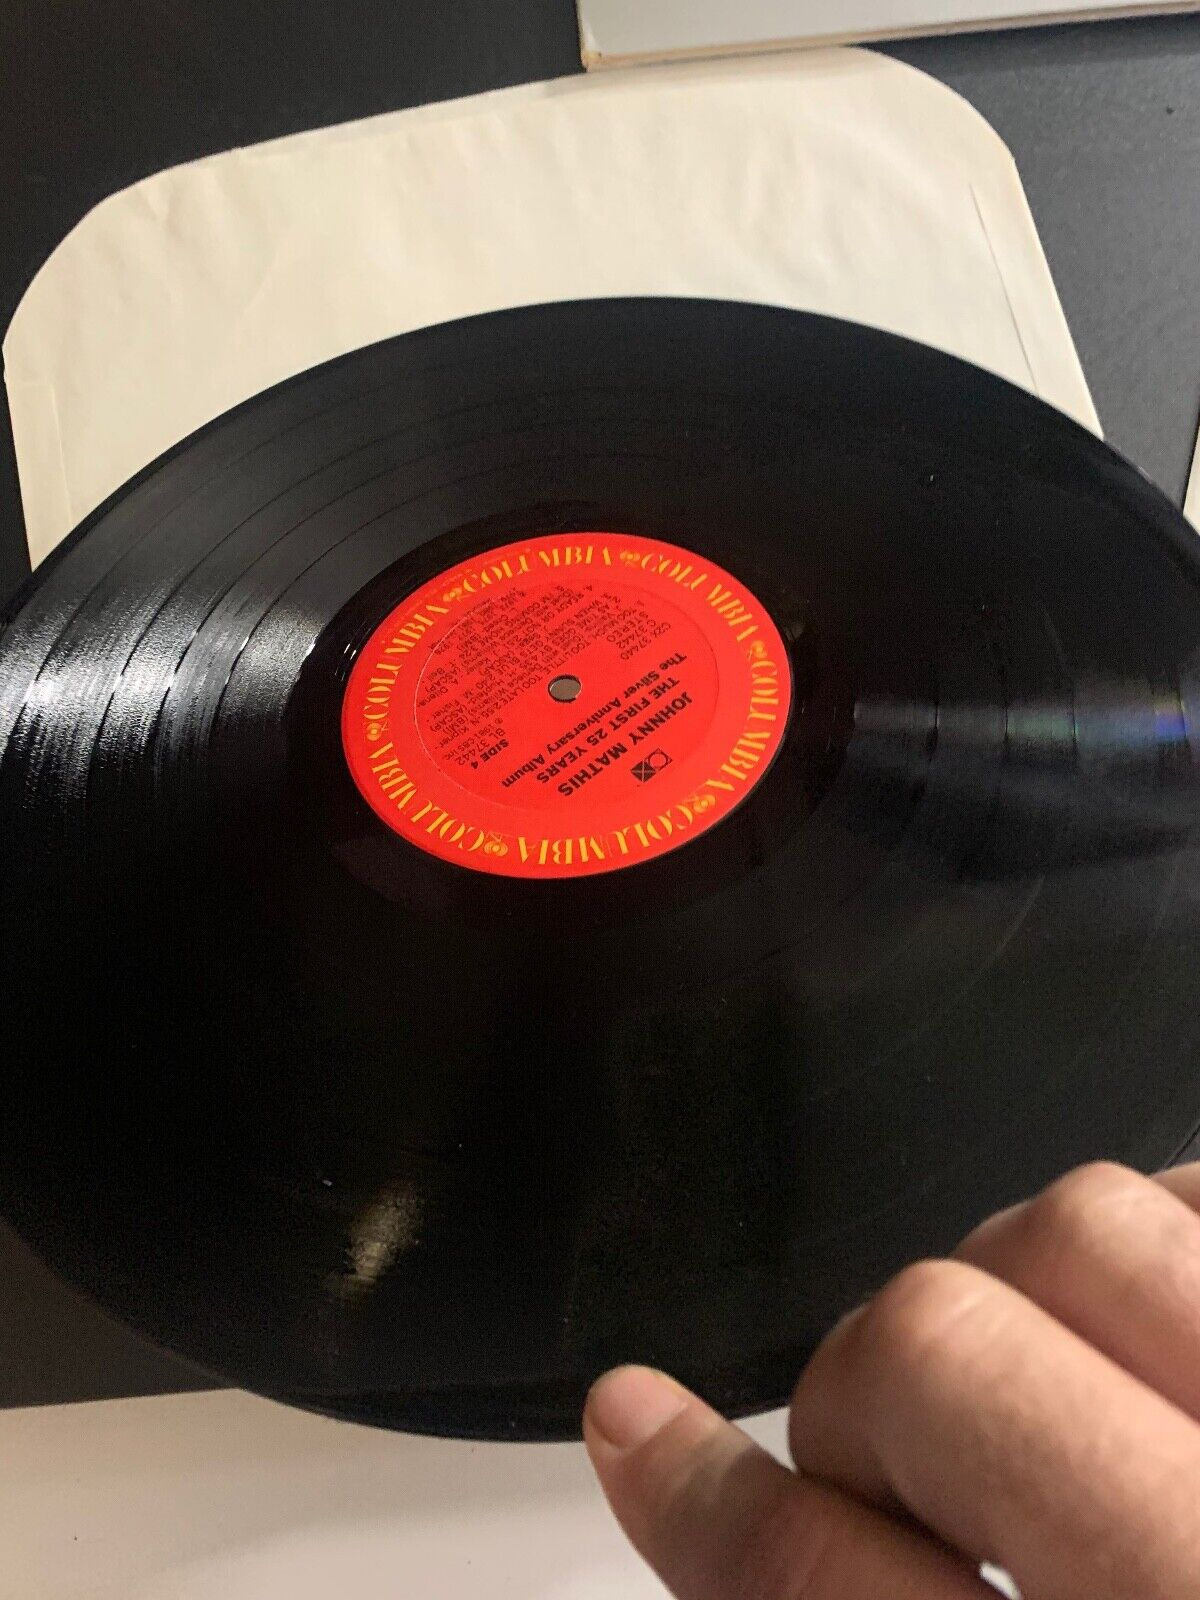 LP RECORD - JOHNNY MATHIS - THE FIRST 25 YEARS - 2 LP SET - COLUMBIA RECORDS - $9.99